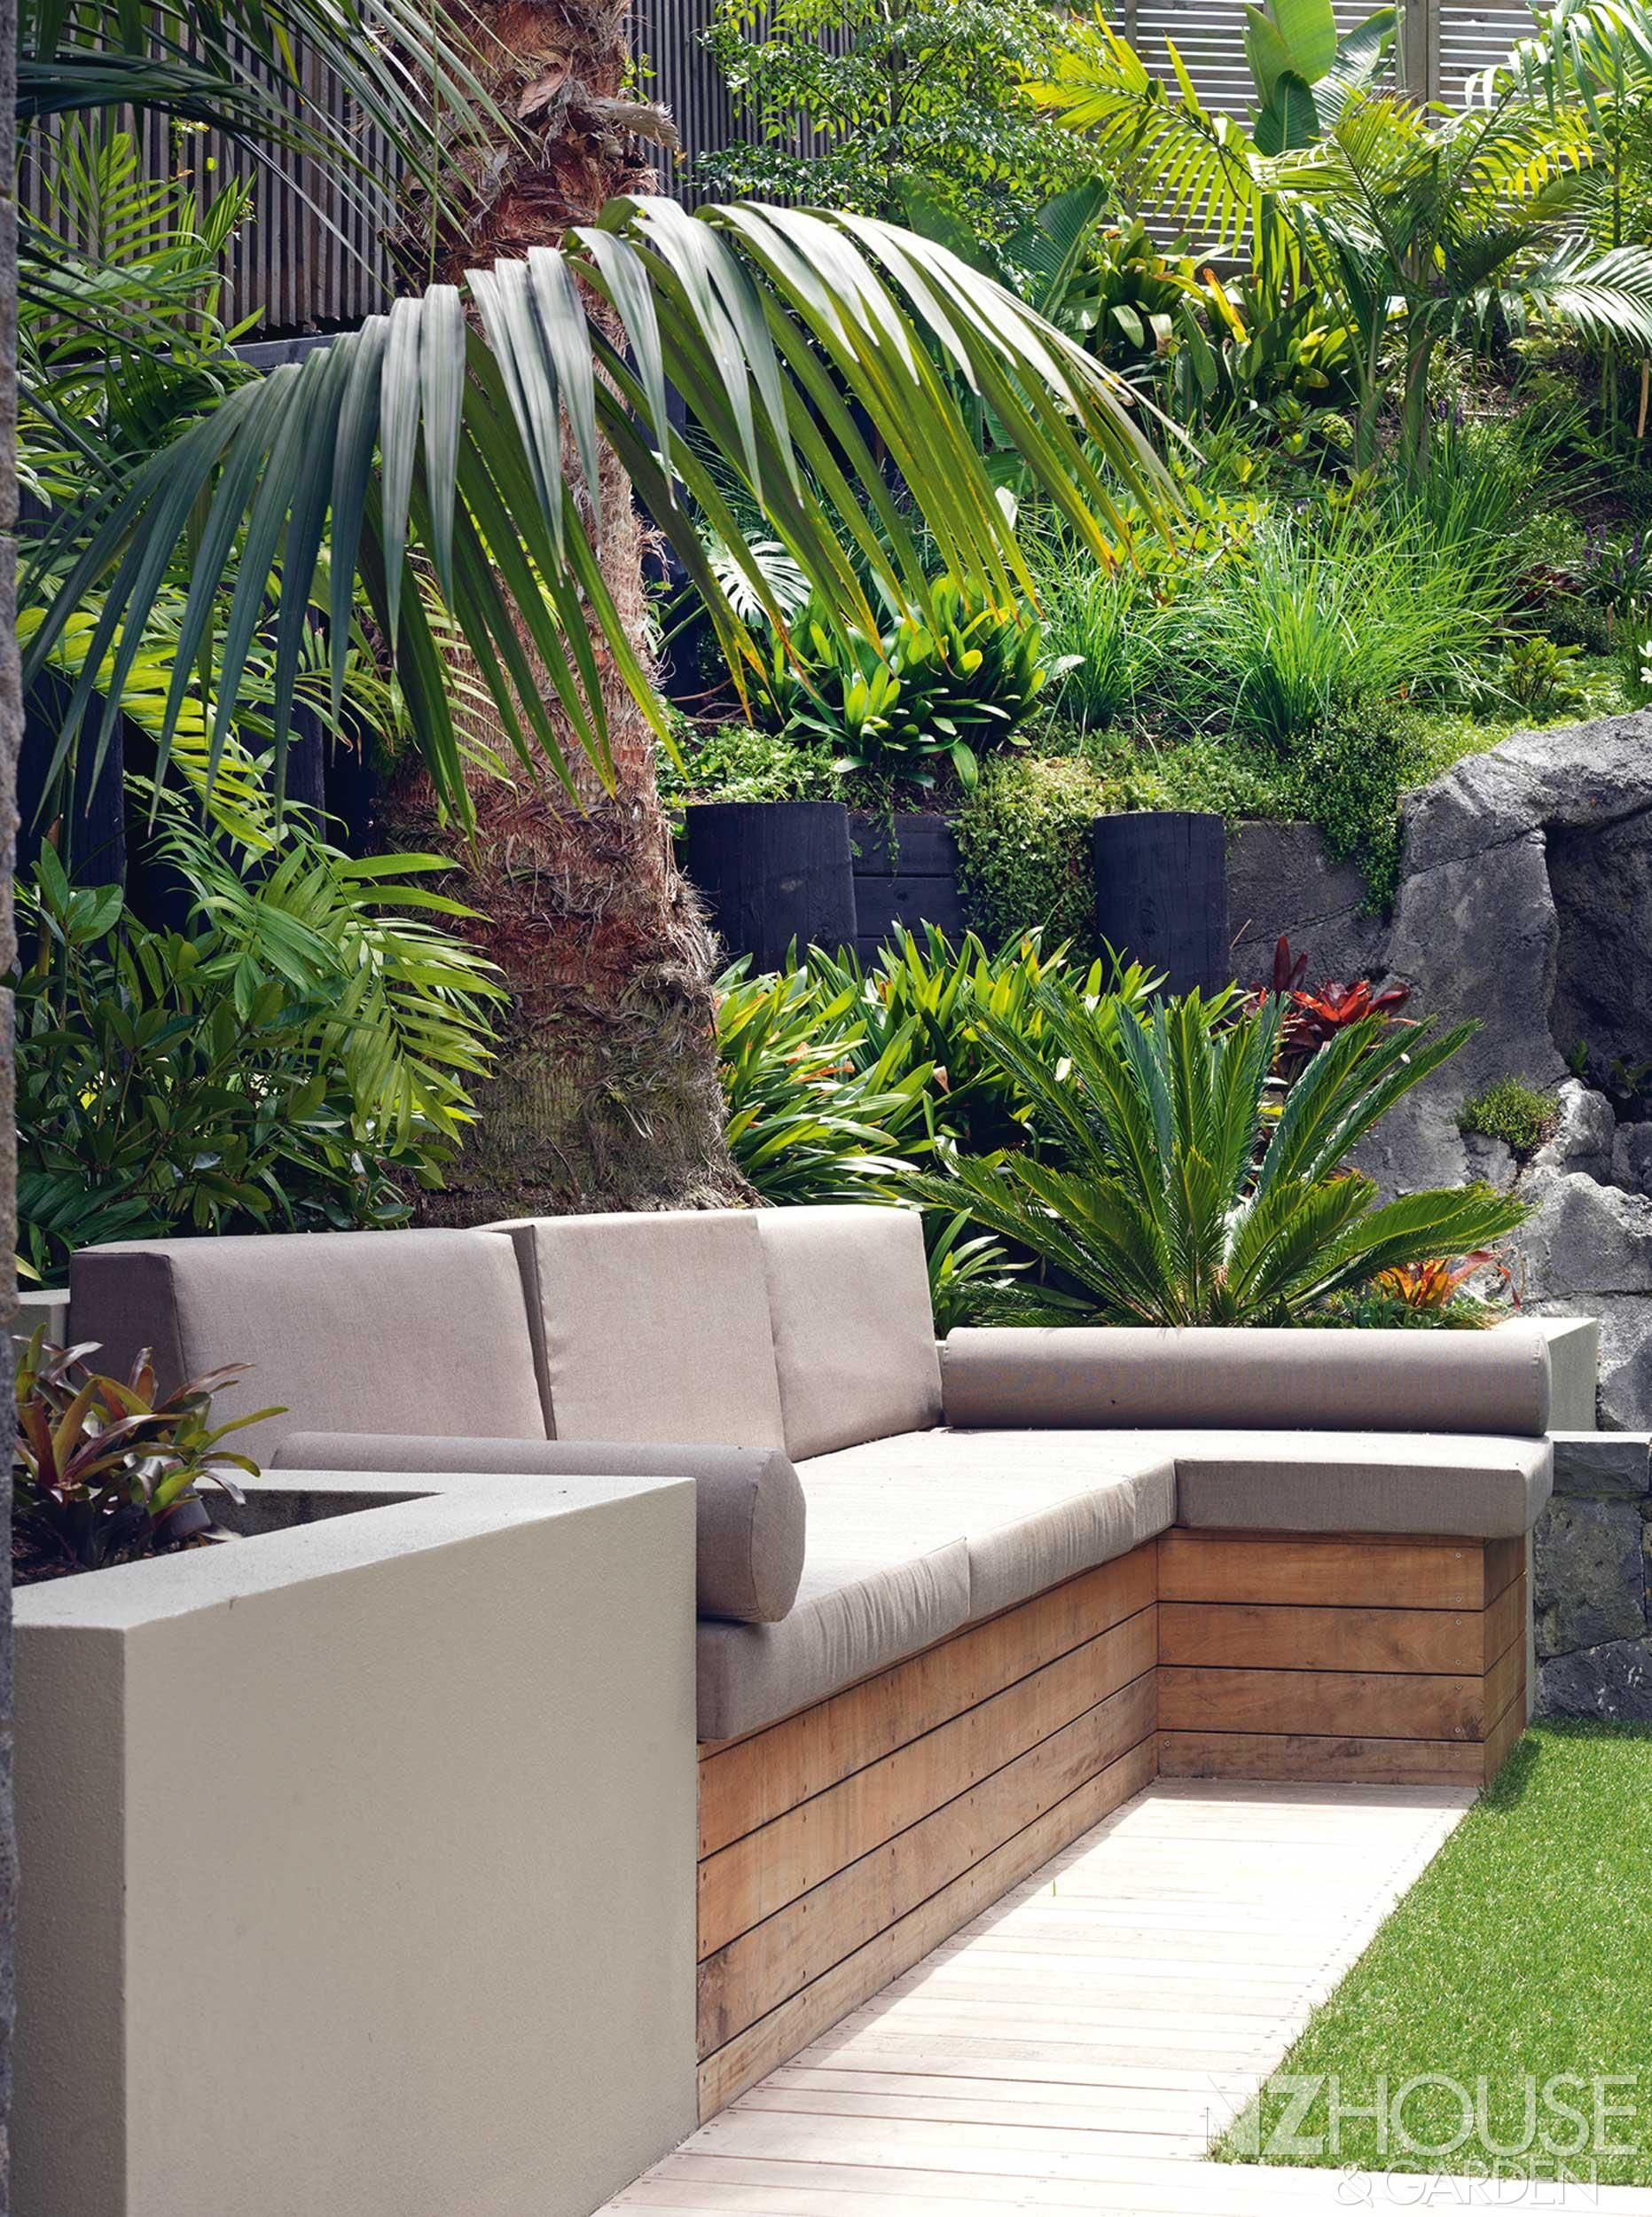 Tropical Garden Ideas Nz plants along retaining wall nz - google search | garden plans